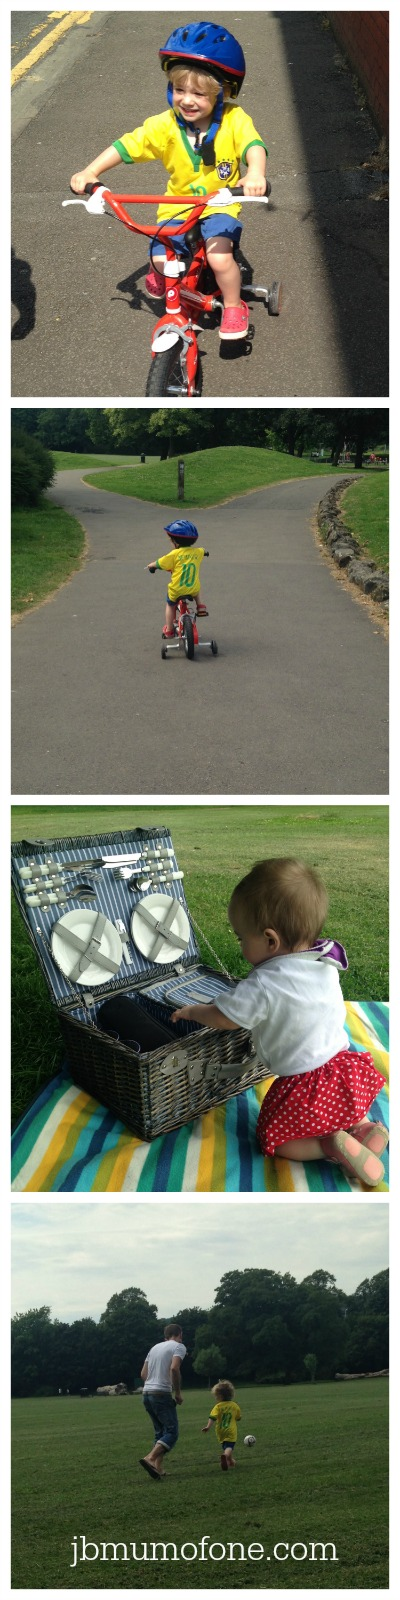 cycling to the park